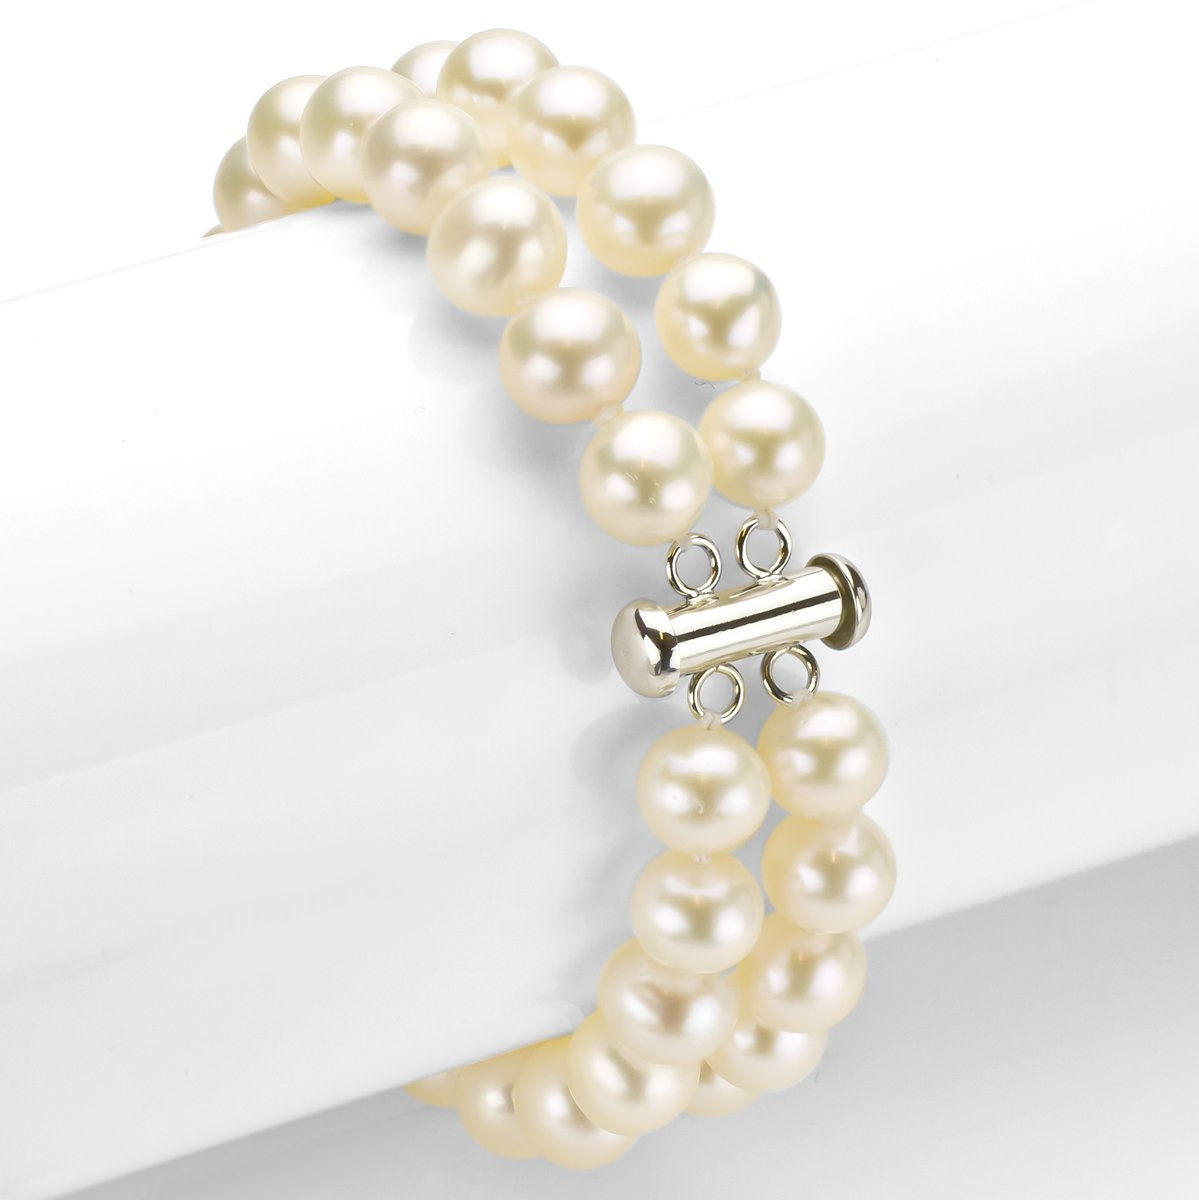 Sterling Silver 2 Rows 8-8.5mm White Freshwater Cultured Pearl Bracelet with Tube Clasp, 8'' by La Regis Jewelry (Image #2)